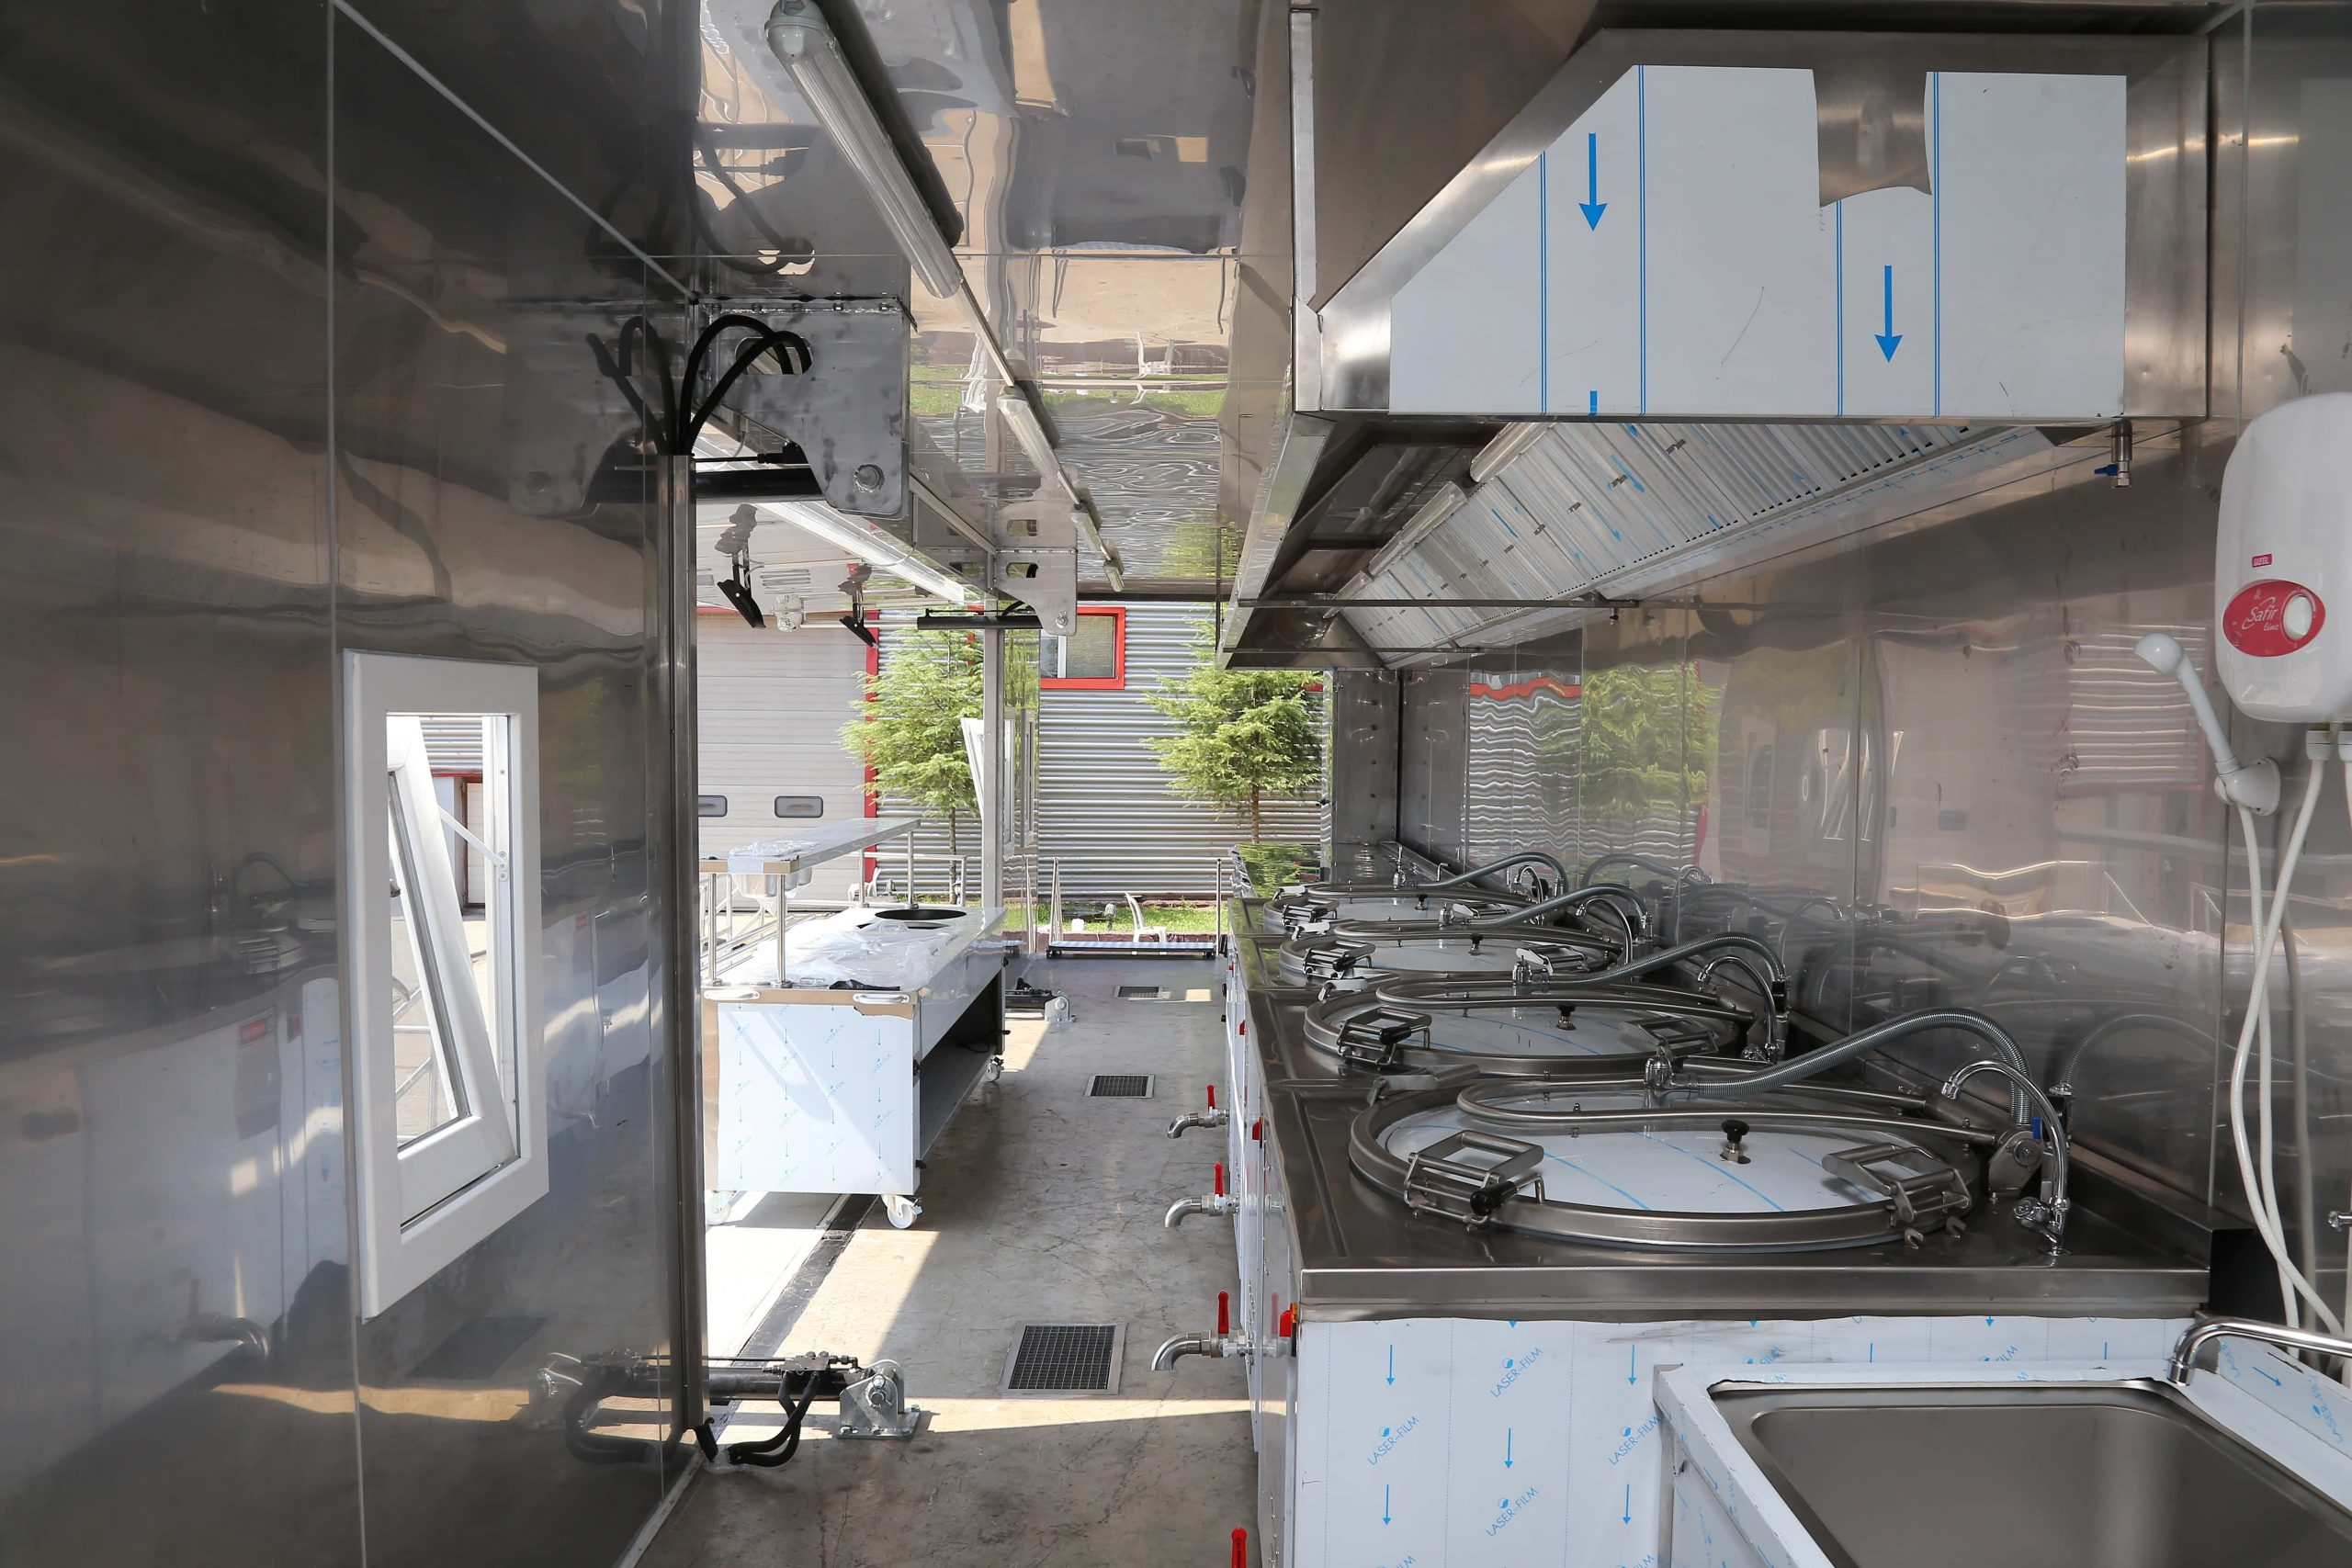 mobile-field-kitchen-trailer-vehicle-4-scaled.jpg